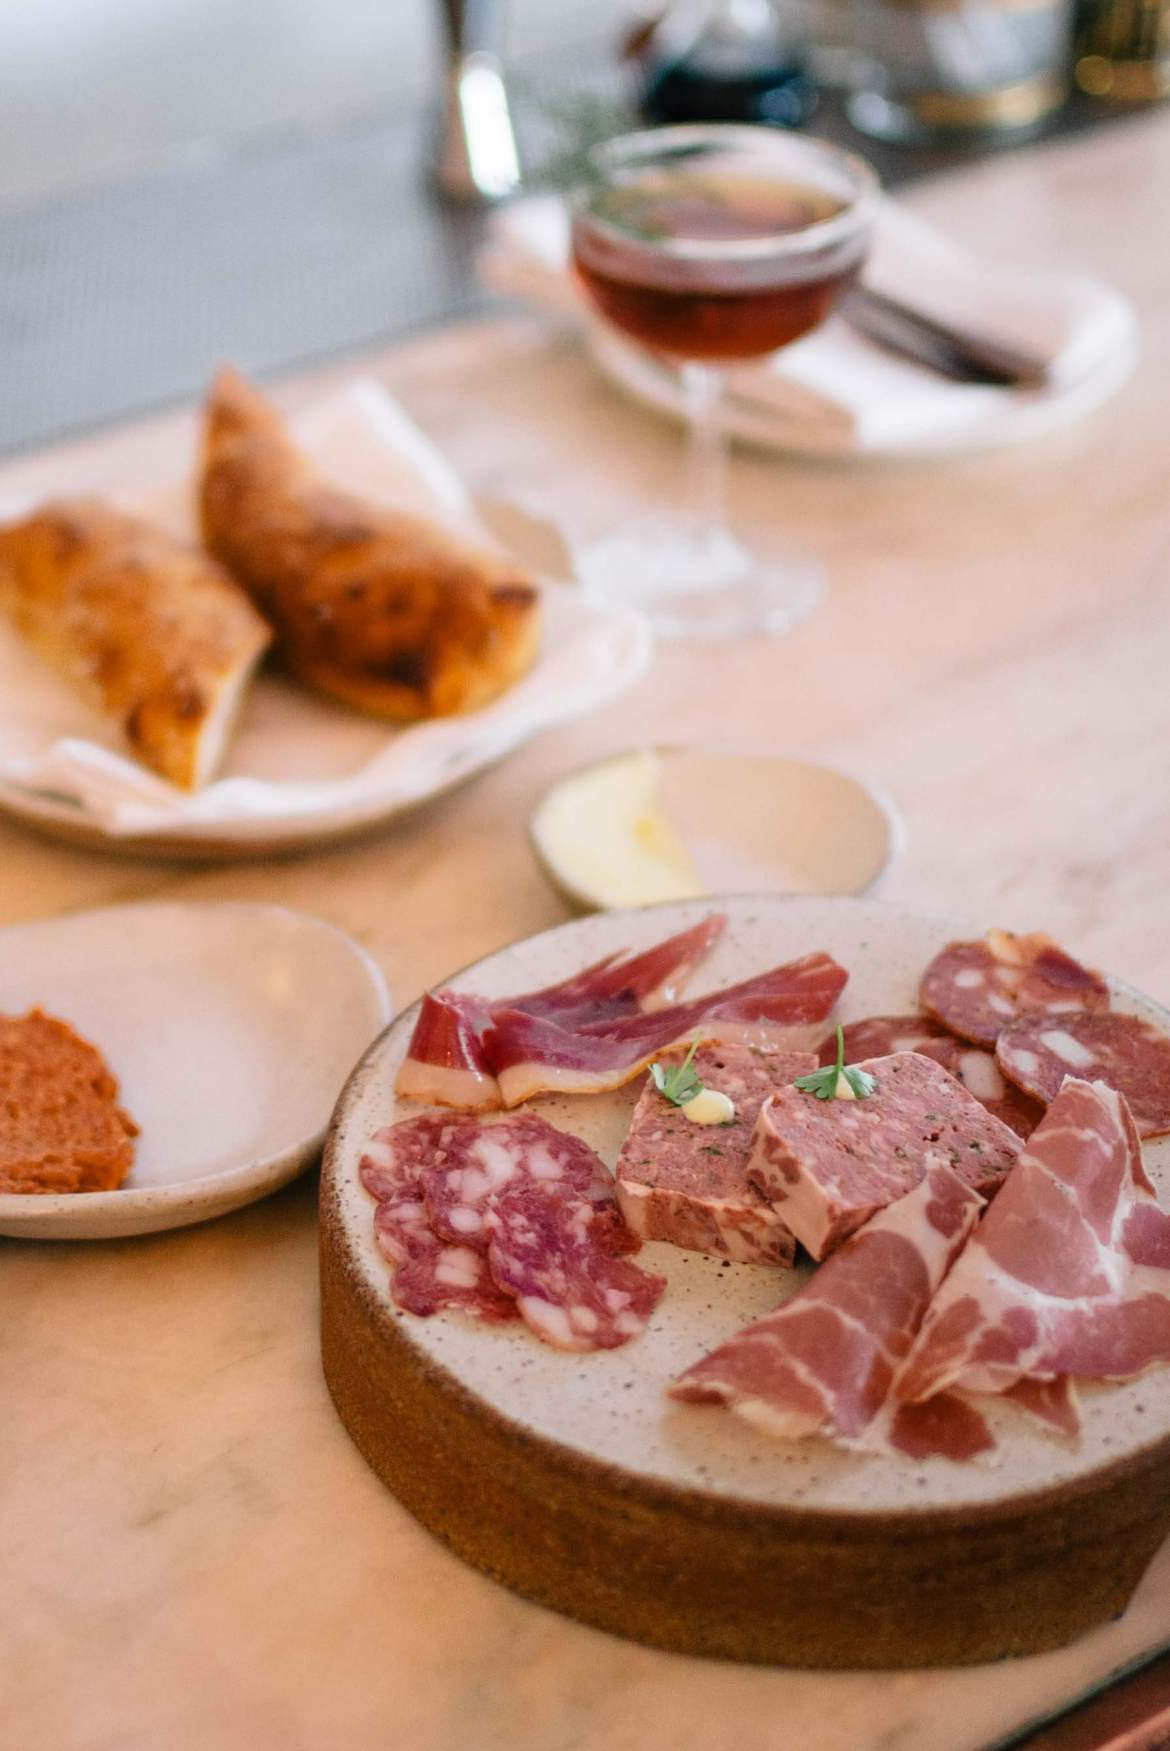 The Taste Edit recommends Gwen for the best cocktails in Hollywood visit Chef Curtis Stone's Gwen and try the homemade charcuterie from the butcher shop.